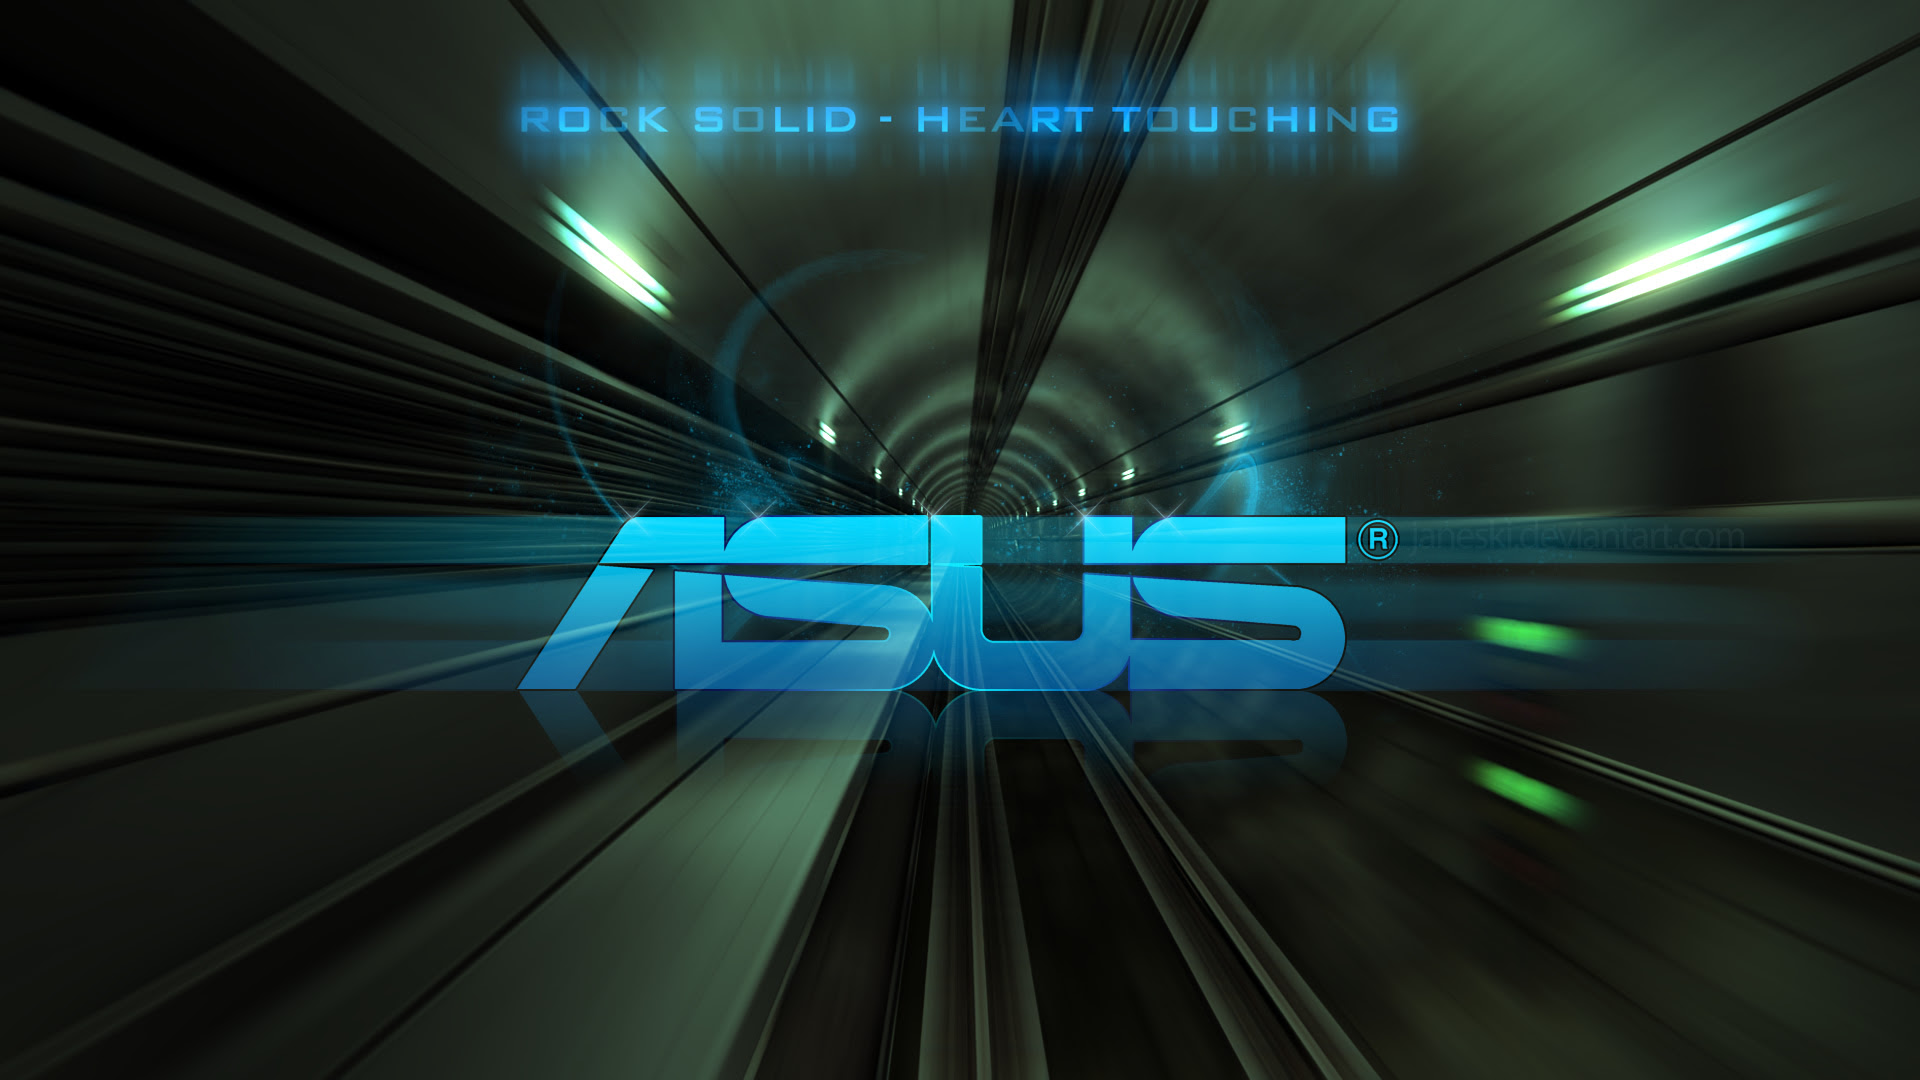 Asus Hd Wallpapers Pictures Images